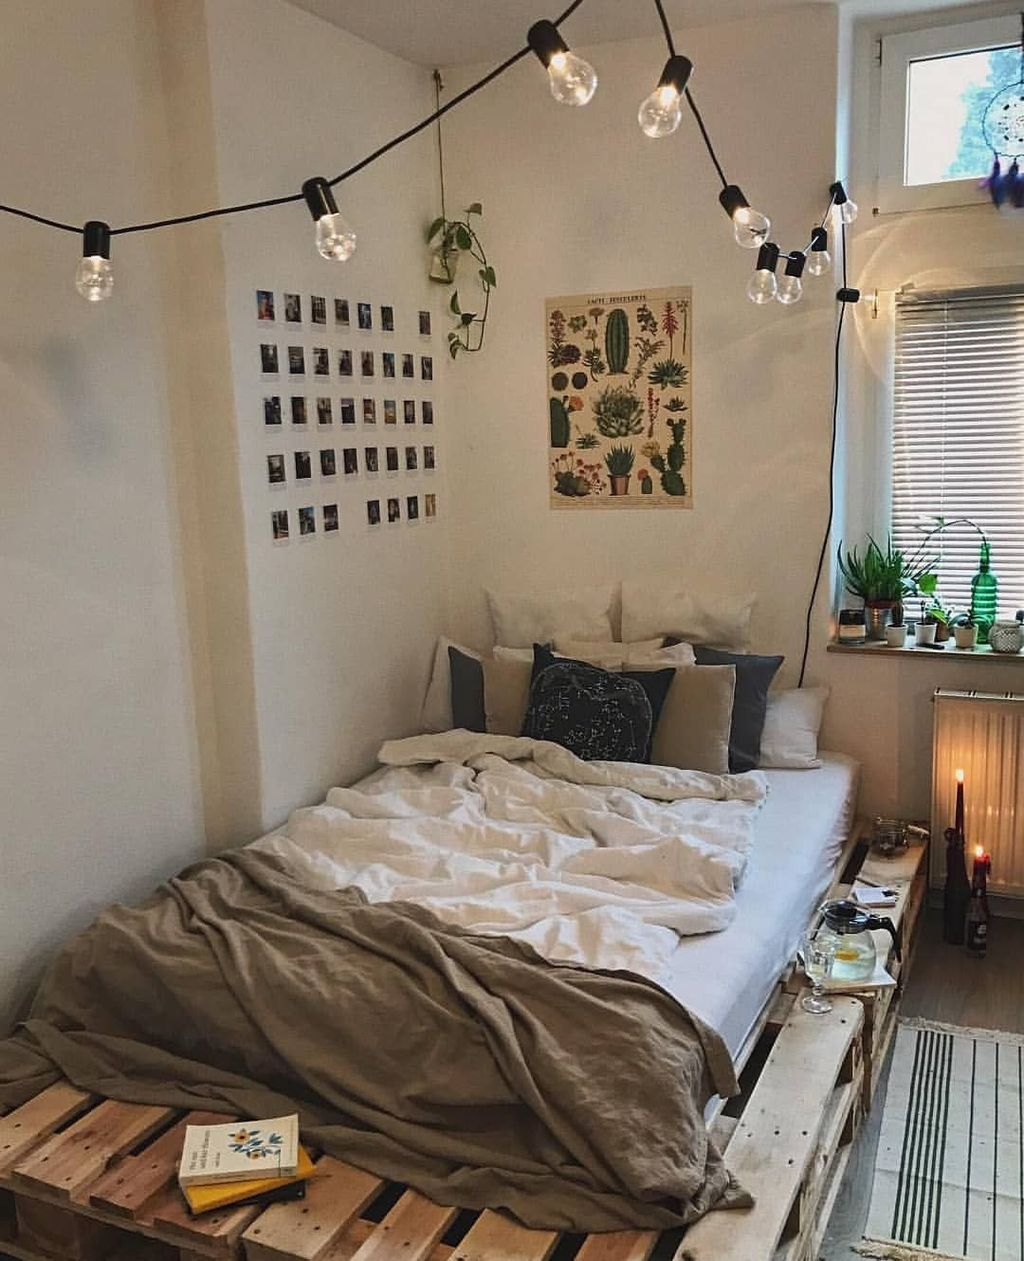 The Best DIY Bedroom Decor Ideas You Have To Try 21